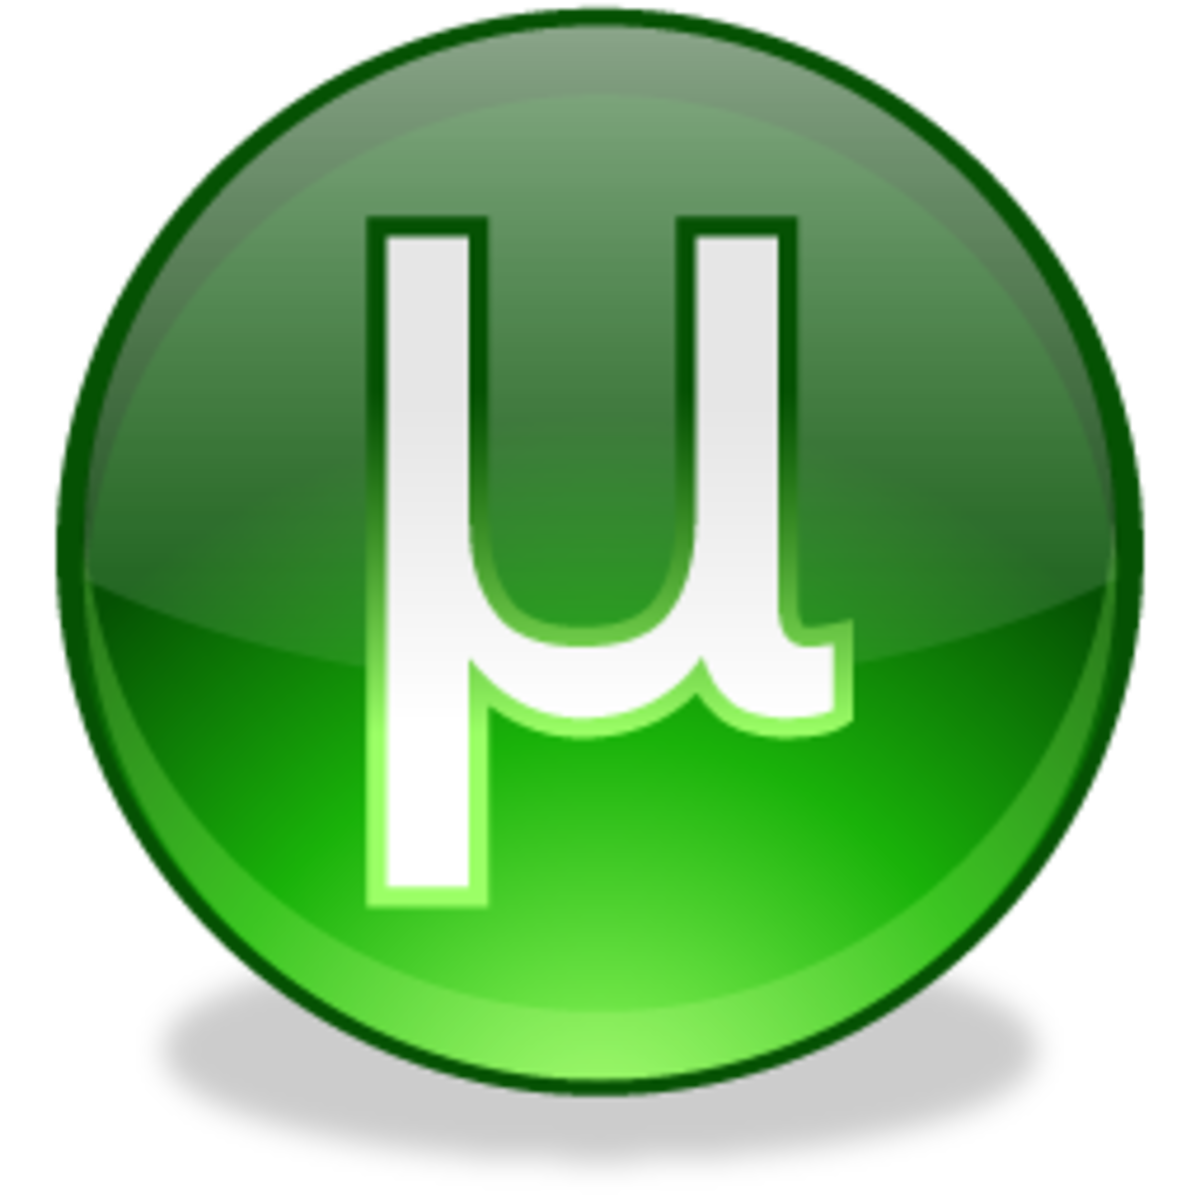 For many people, uTorrent is the torrent client of choice.